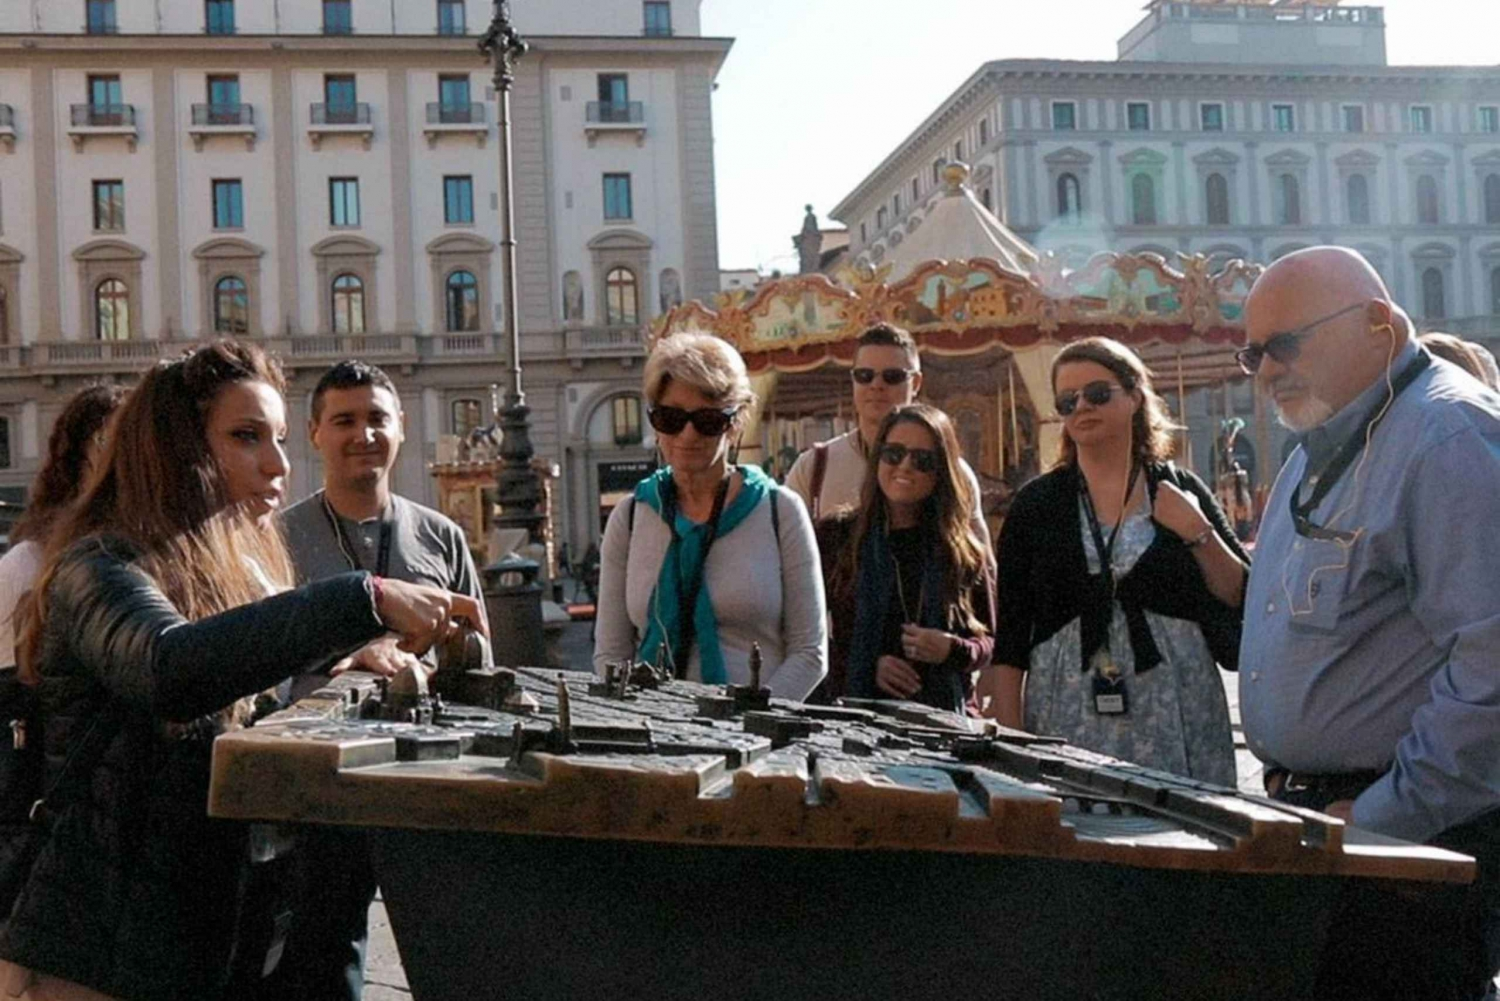 Private Tour & Discovery by Foot